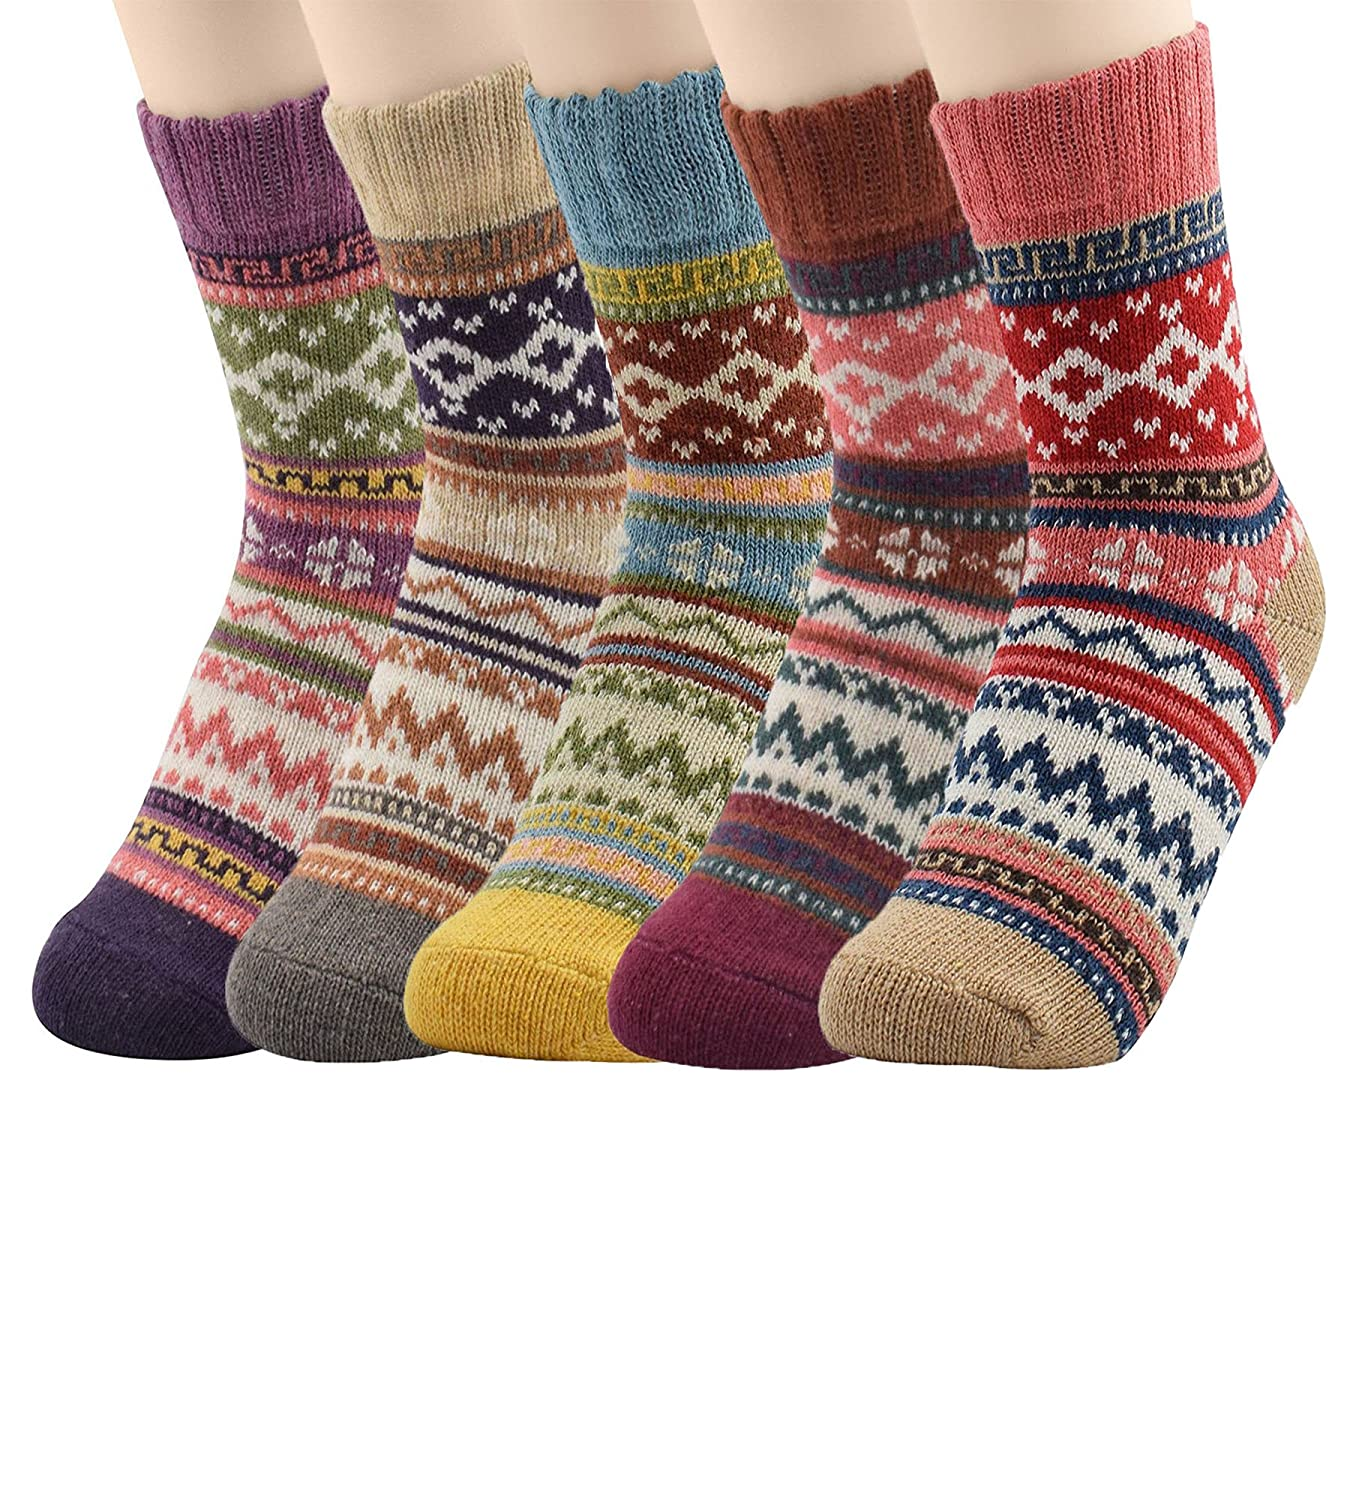 American Trends Womens Winter Wool Socks Thermal Thick Warm Cute Knitting Vintage Style Casual Soft Cozy Crew Sock